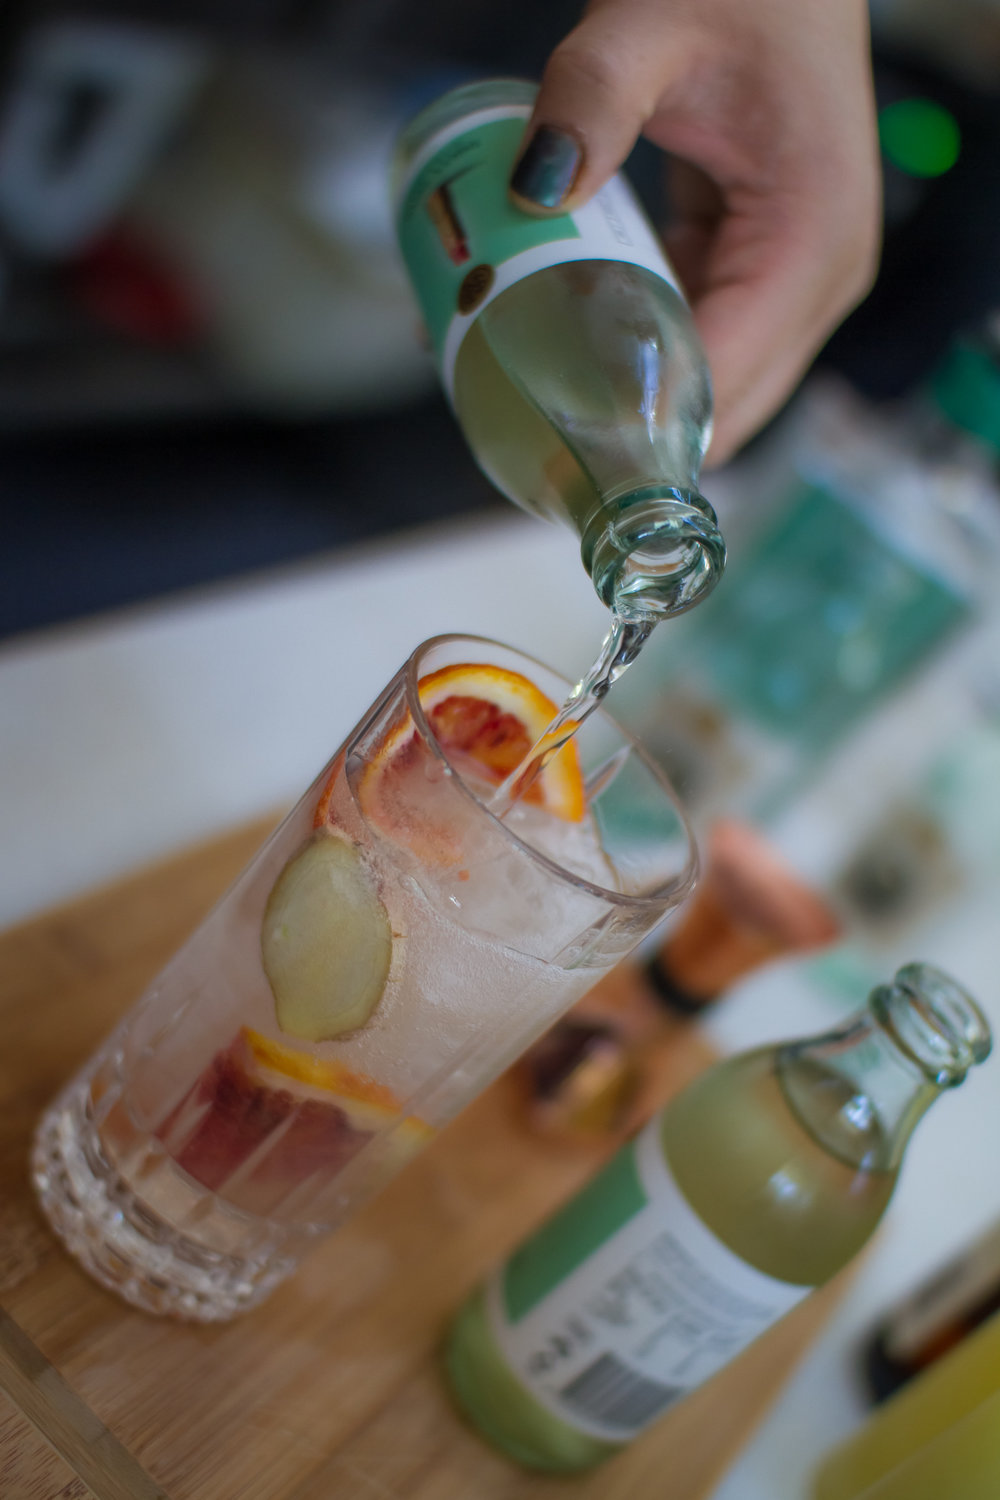 Animus Ambrosian Gin and StrangeLove Dirty tonic, garnished with a slice of blood orange and a sliver of ginger.  Photo: Steve Edwards @steve_sketch